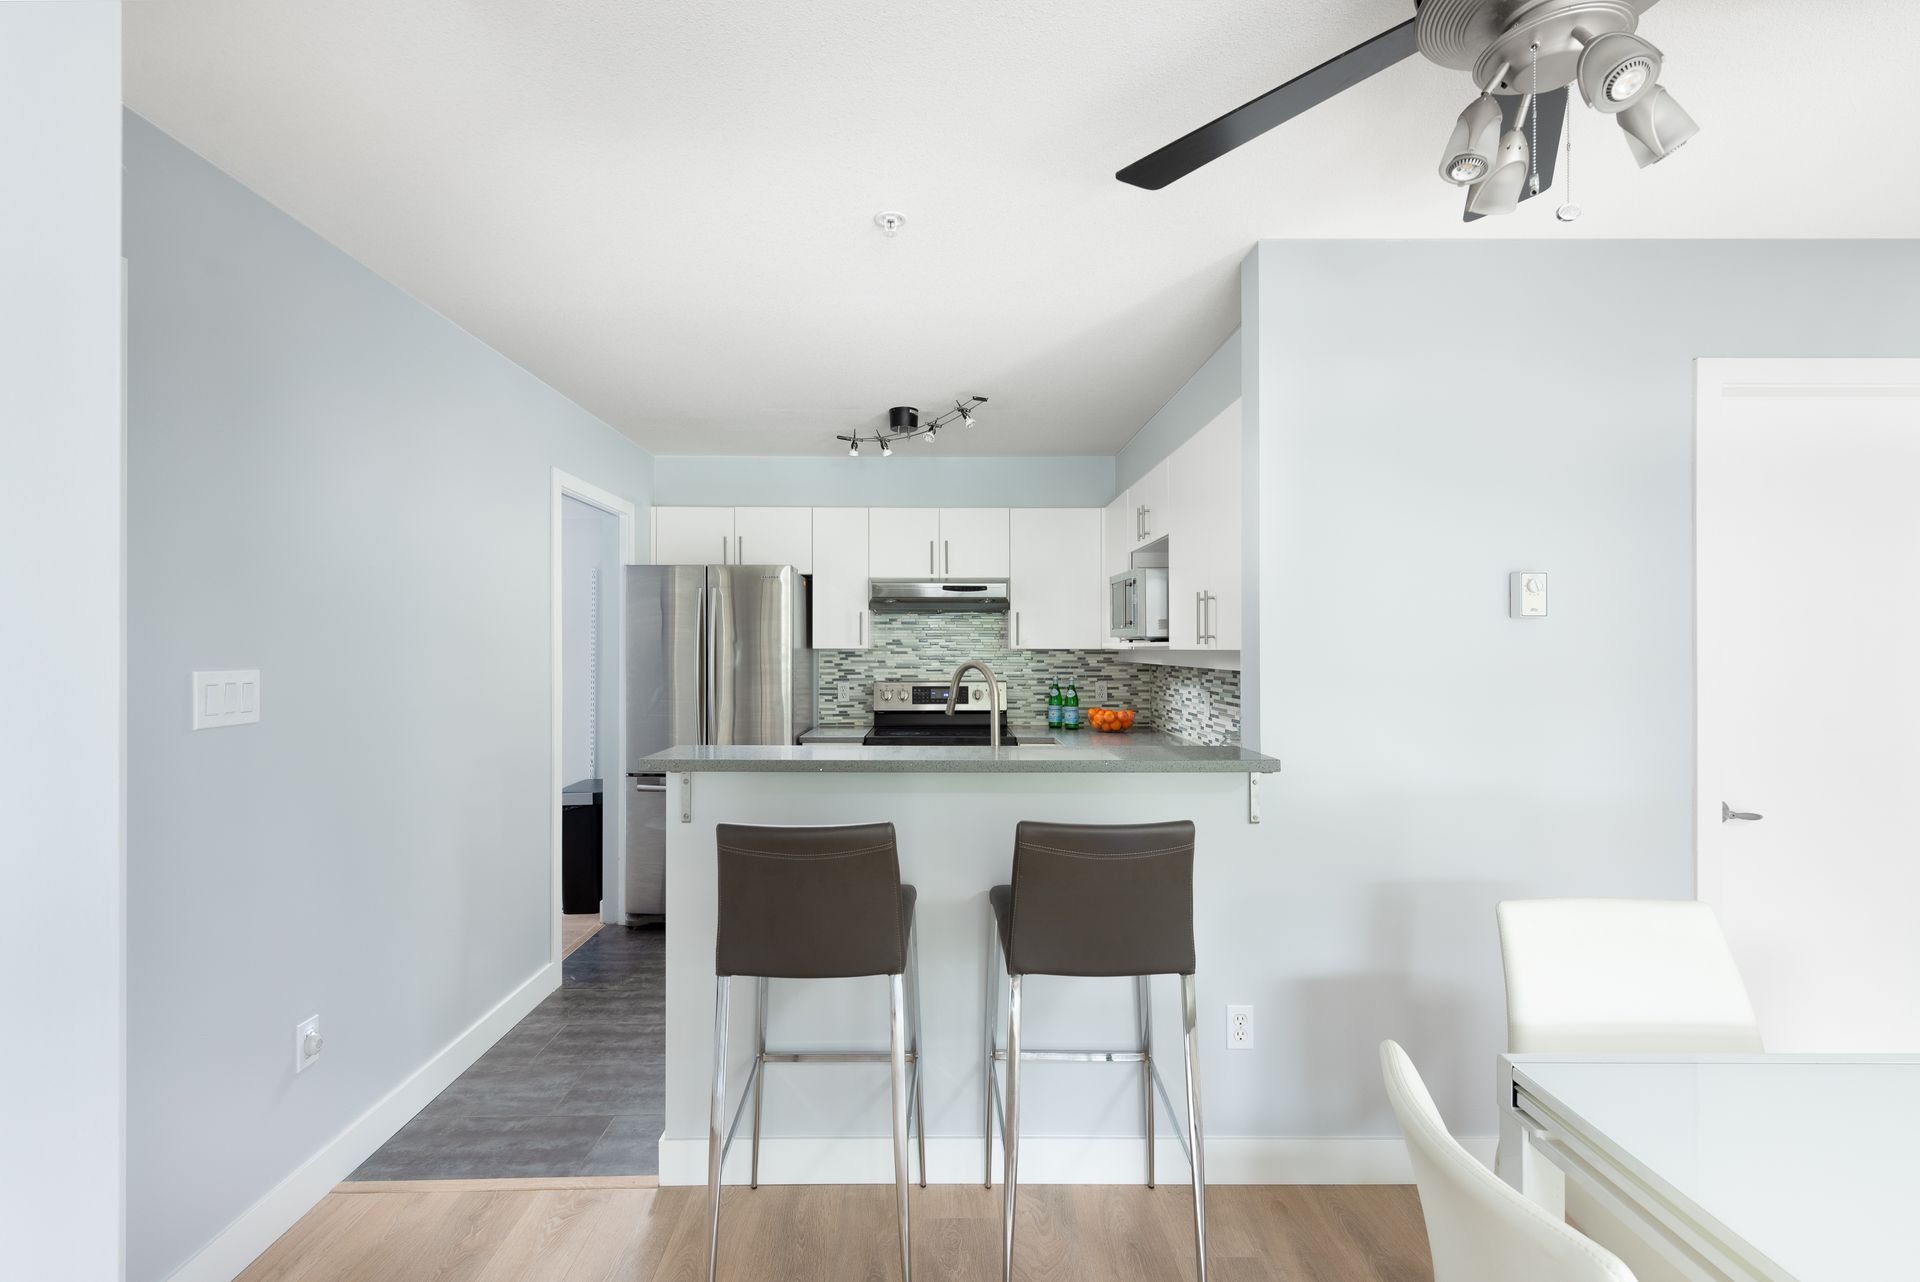 3155-w-4th-ave-vancouver-360hometours-11 at